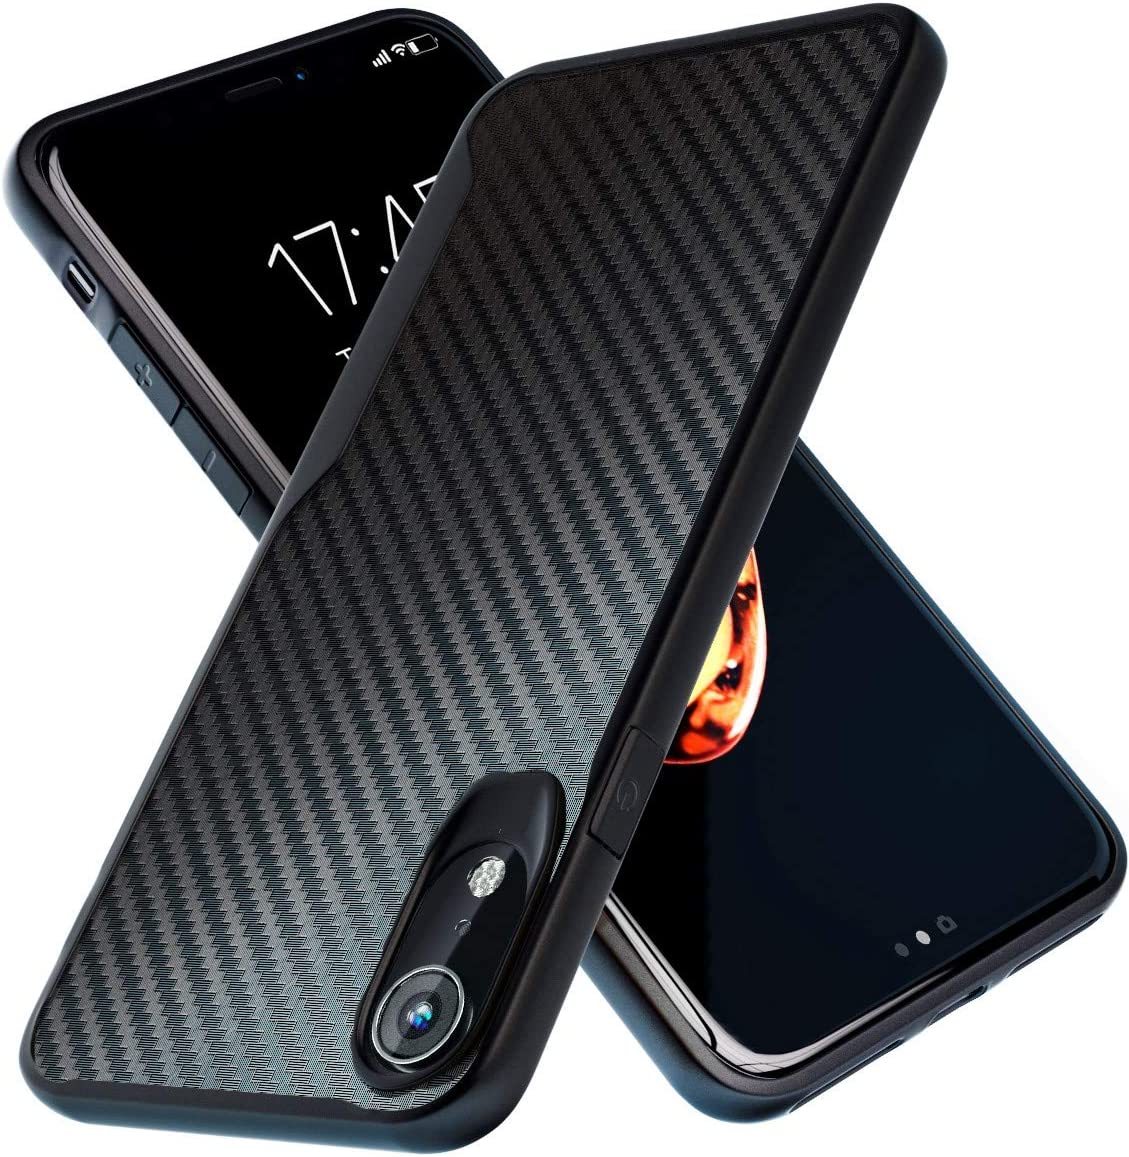 Kitoo Designed for iPhone XR Case, Carbon Fiber Pattern, 10ft. Drop Tested, Wireless Charging - Black